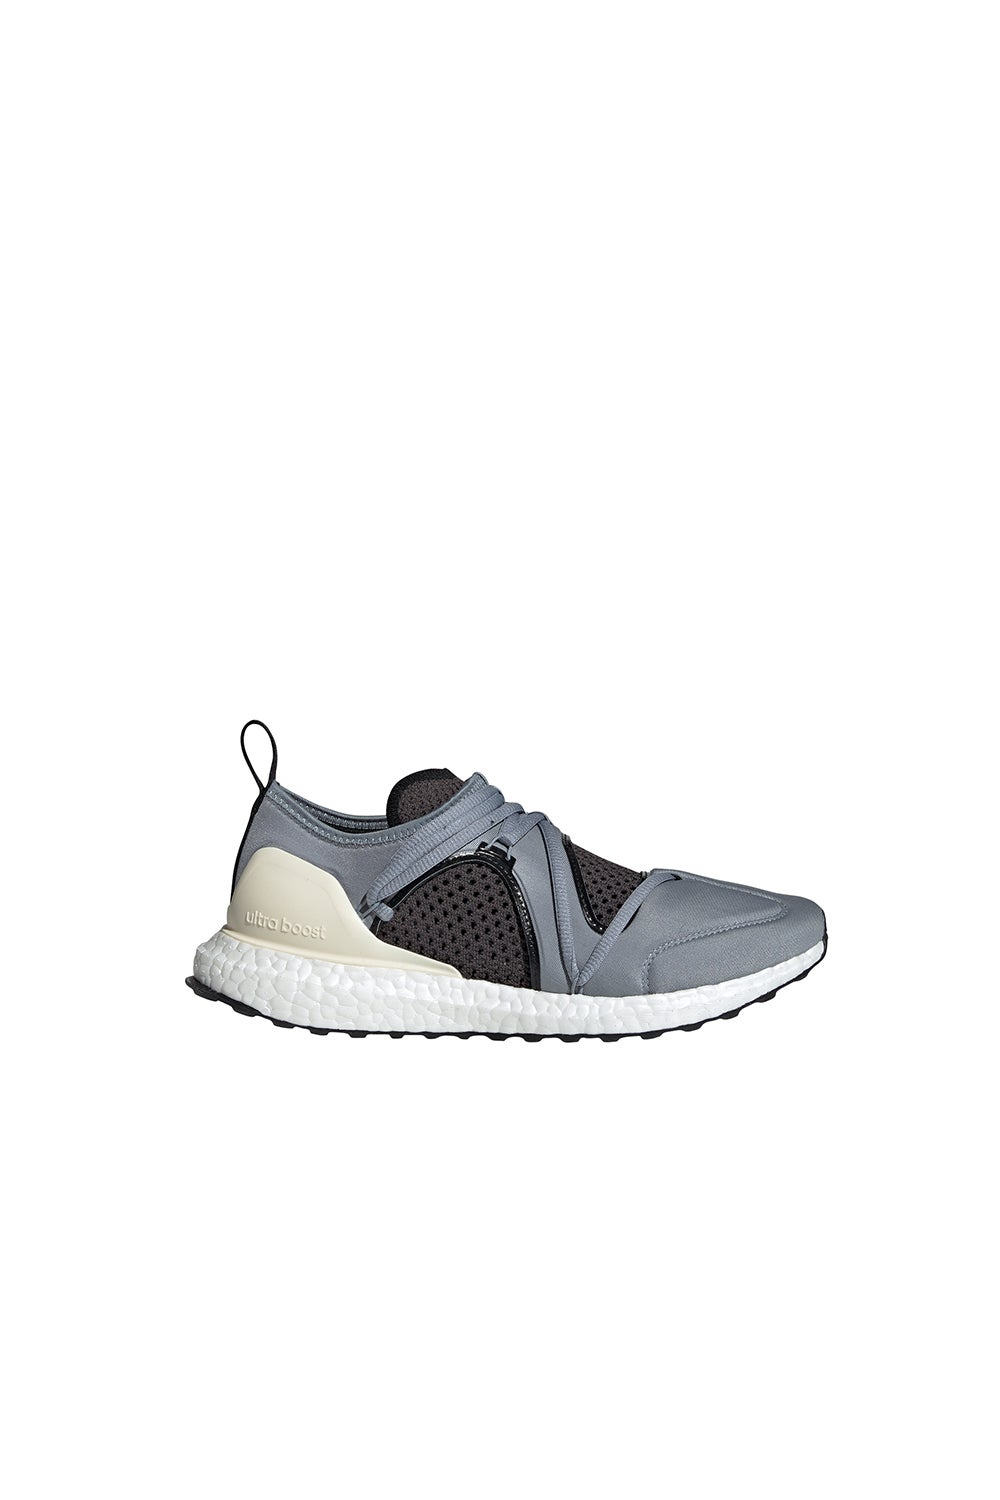 adidas by Stella McCartney Ultraboost Shoes ST Stone/Utility Black/Cream White